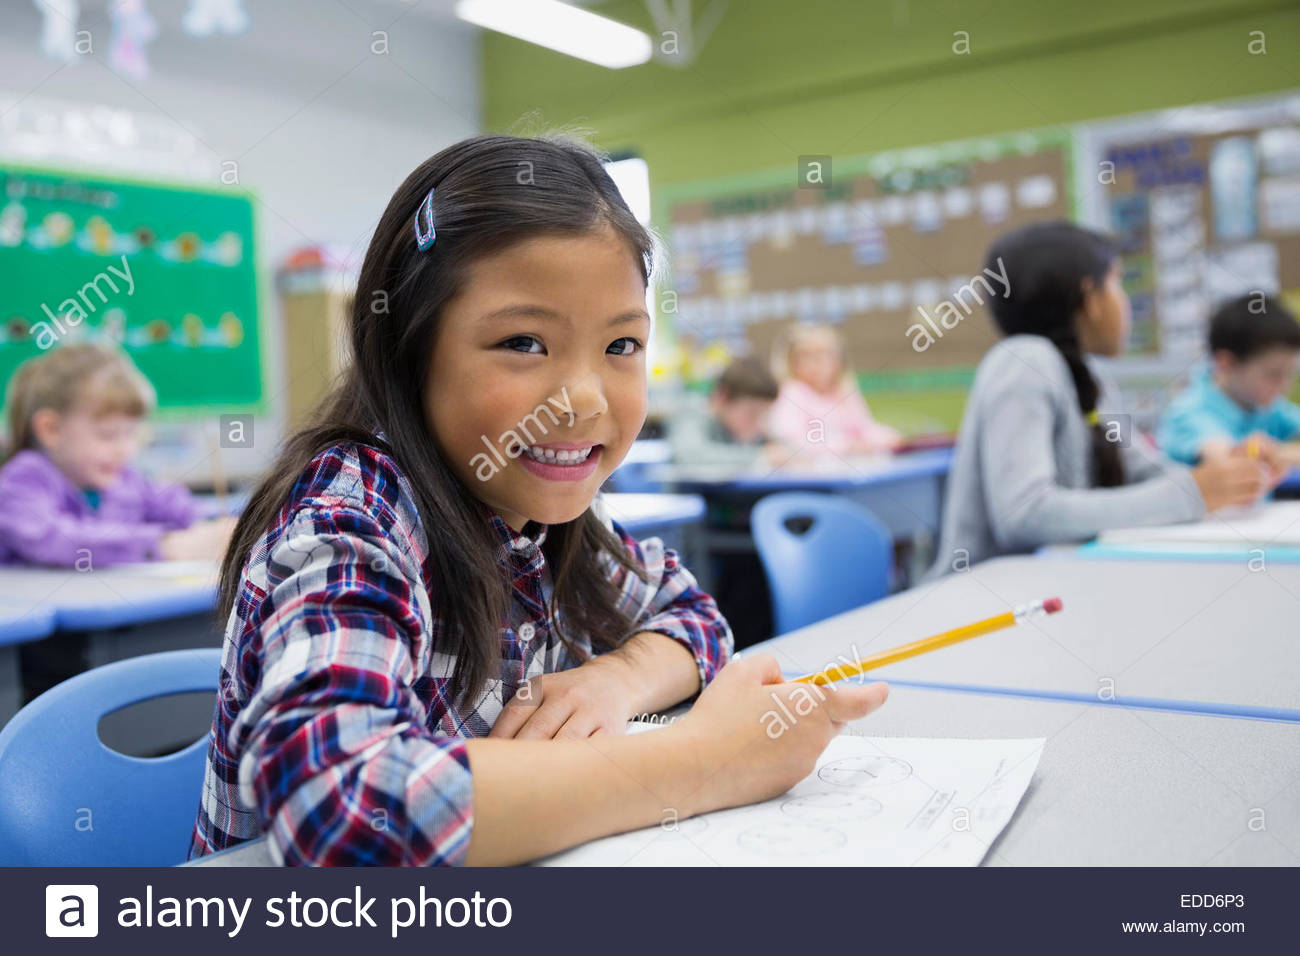 Portrait of smiling elementary student at desk - Stock Image